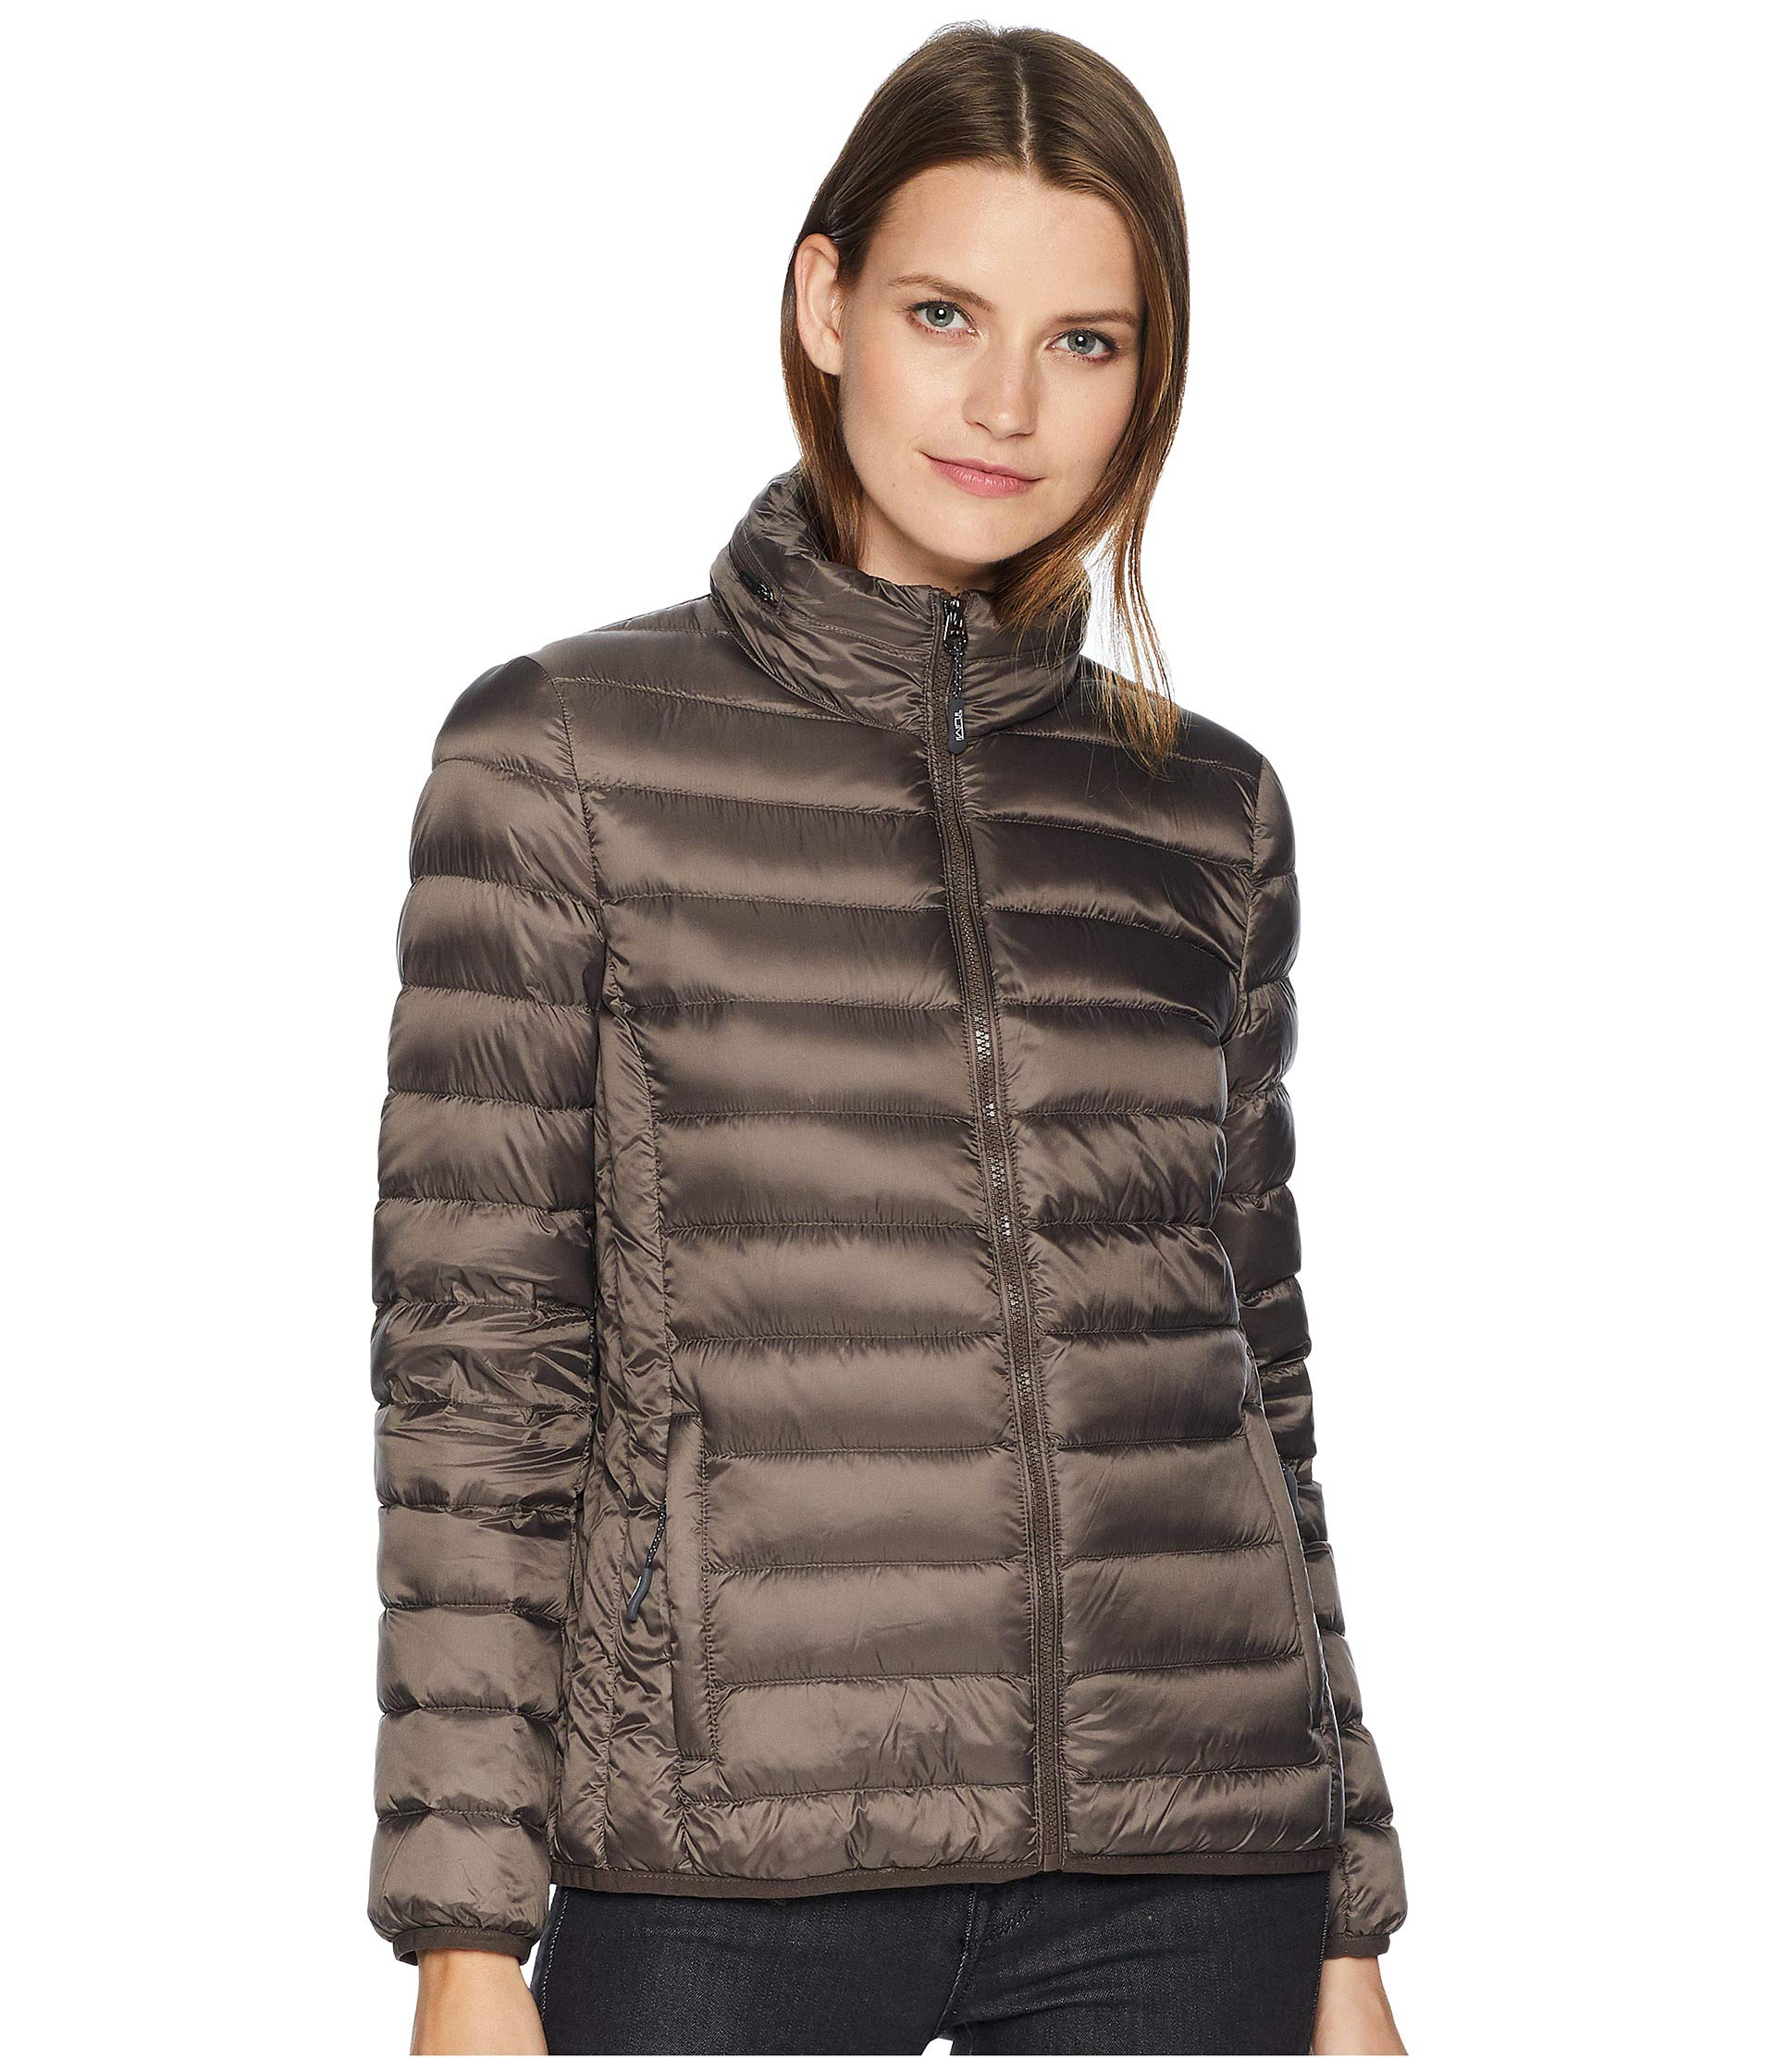 d2fa37a4c0 Insulated Down Jackets & Cute Packable Coats For Women